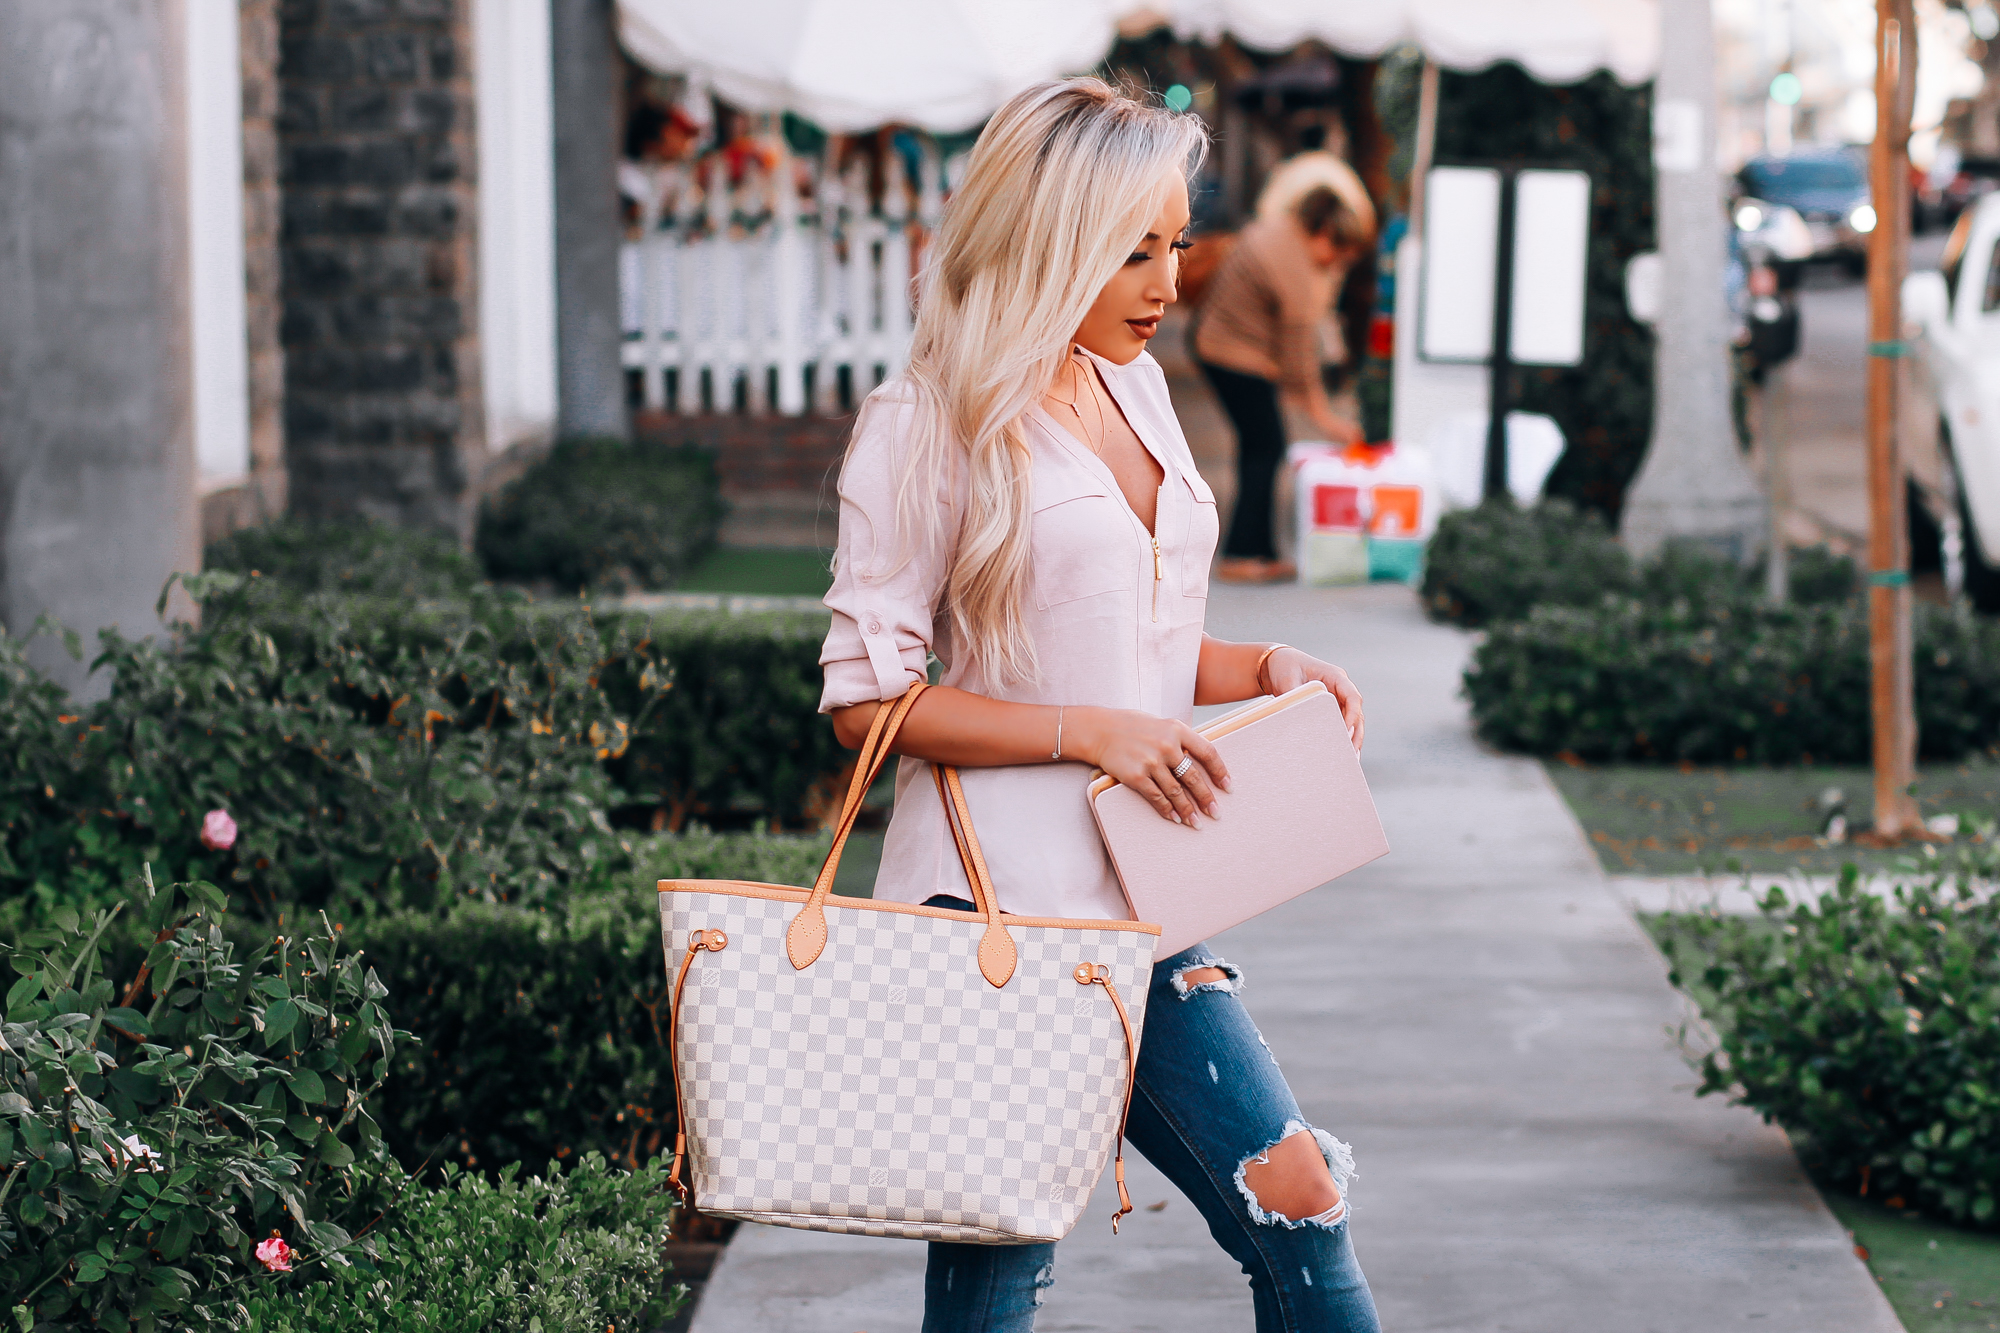 Blondie in the City | Casual Style | The Prettiest Pink Journal & 2018 Agenda